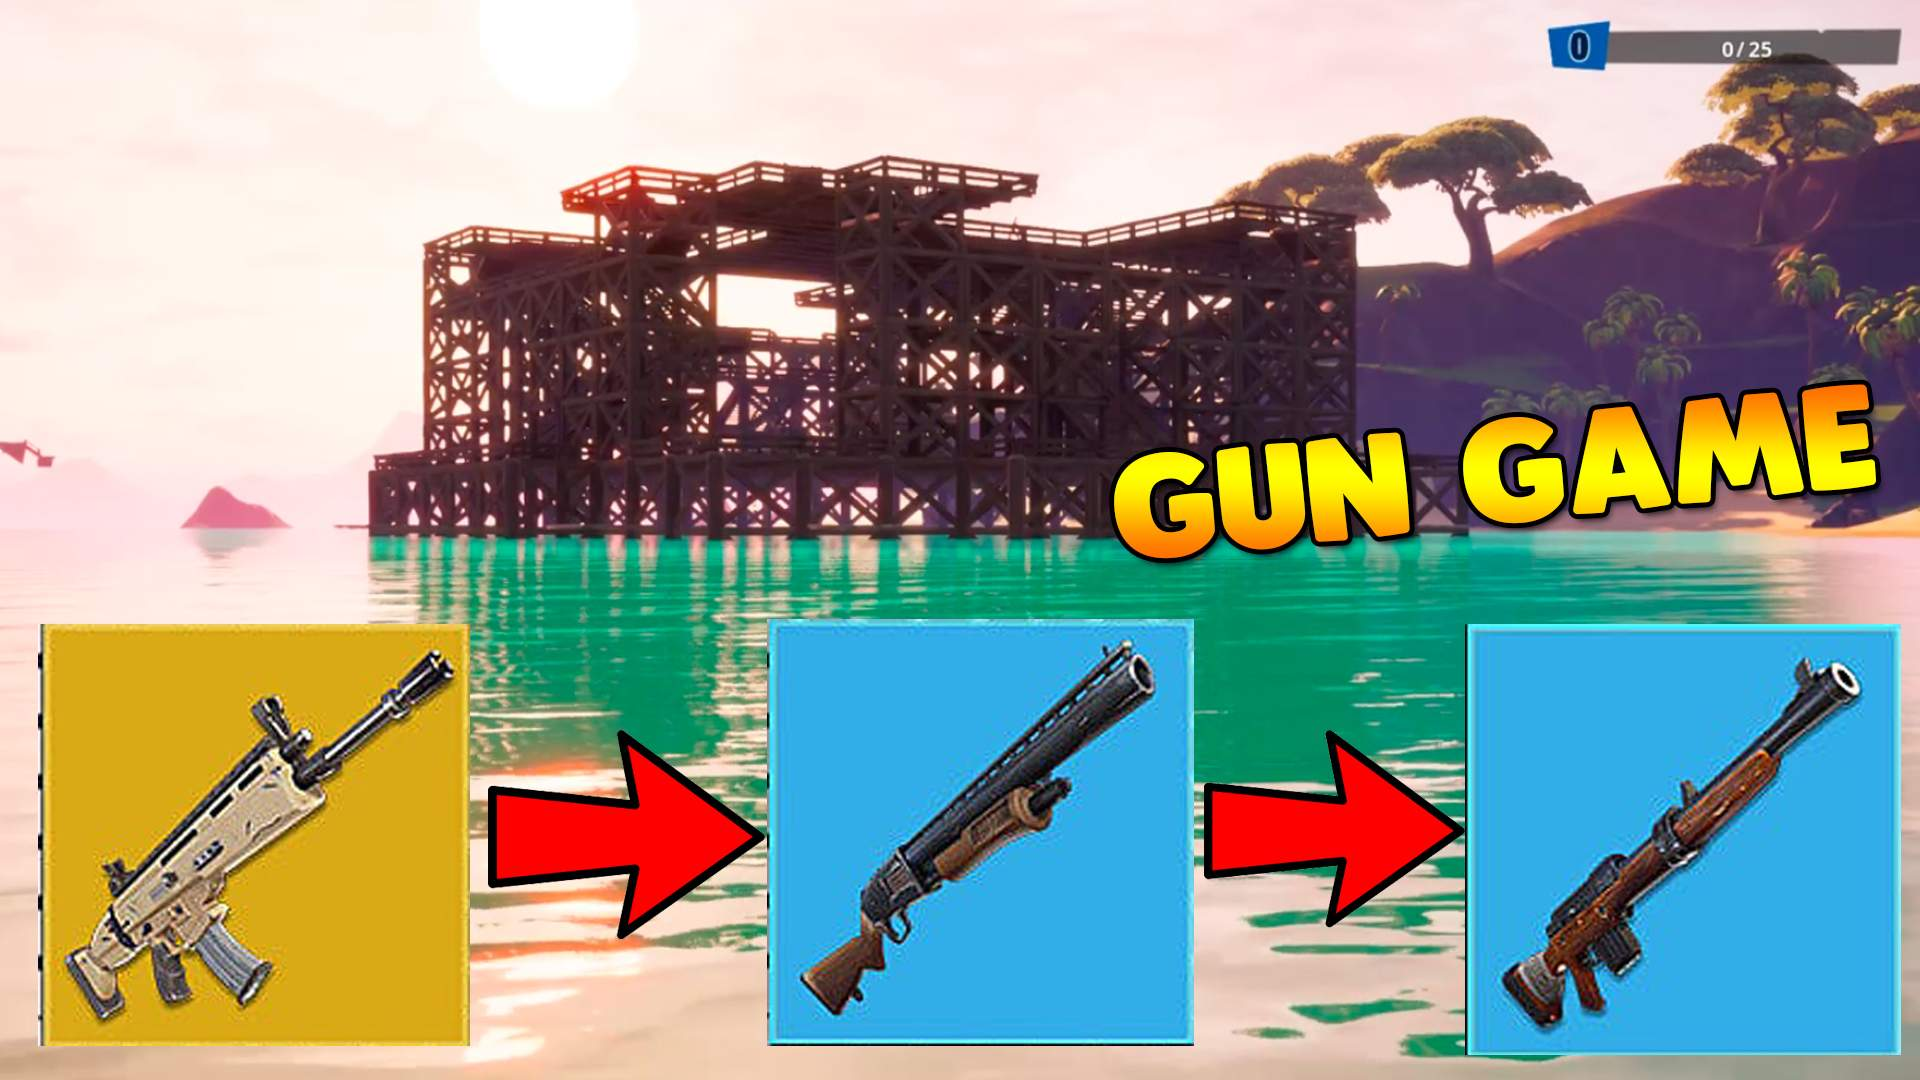 GUN GAME TROPICAL FORTRESS